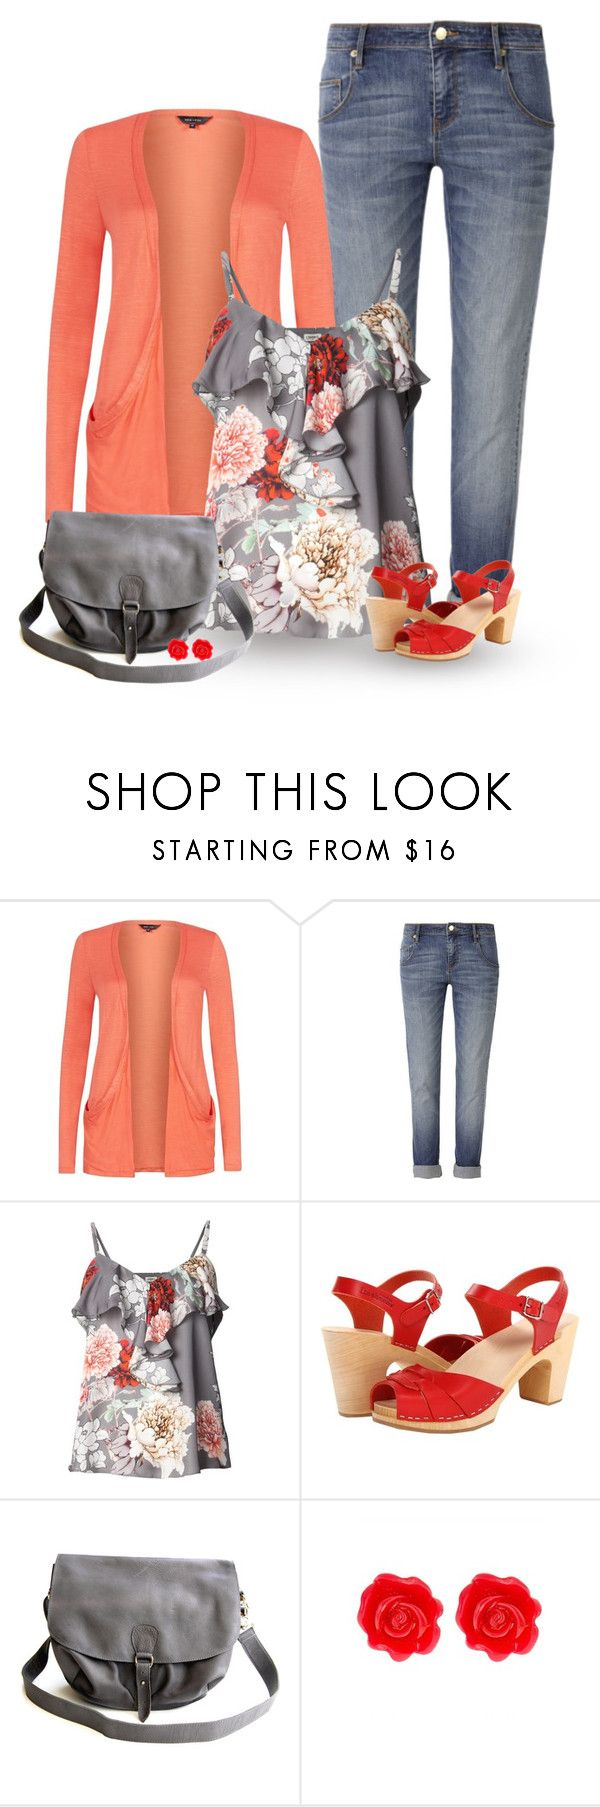 """""""Untitled #1093"""" by chelseagirlfashion ❤ liked on Polyvore featuring sass & bide, L'Agence, Swedish Hasbeens, B.I.T.S. BackInTheSaddle, Fornash and roadtrip"""